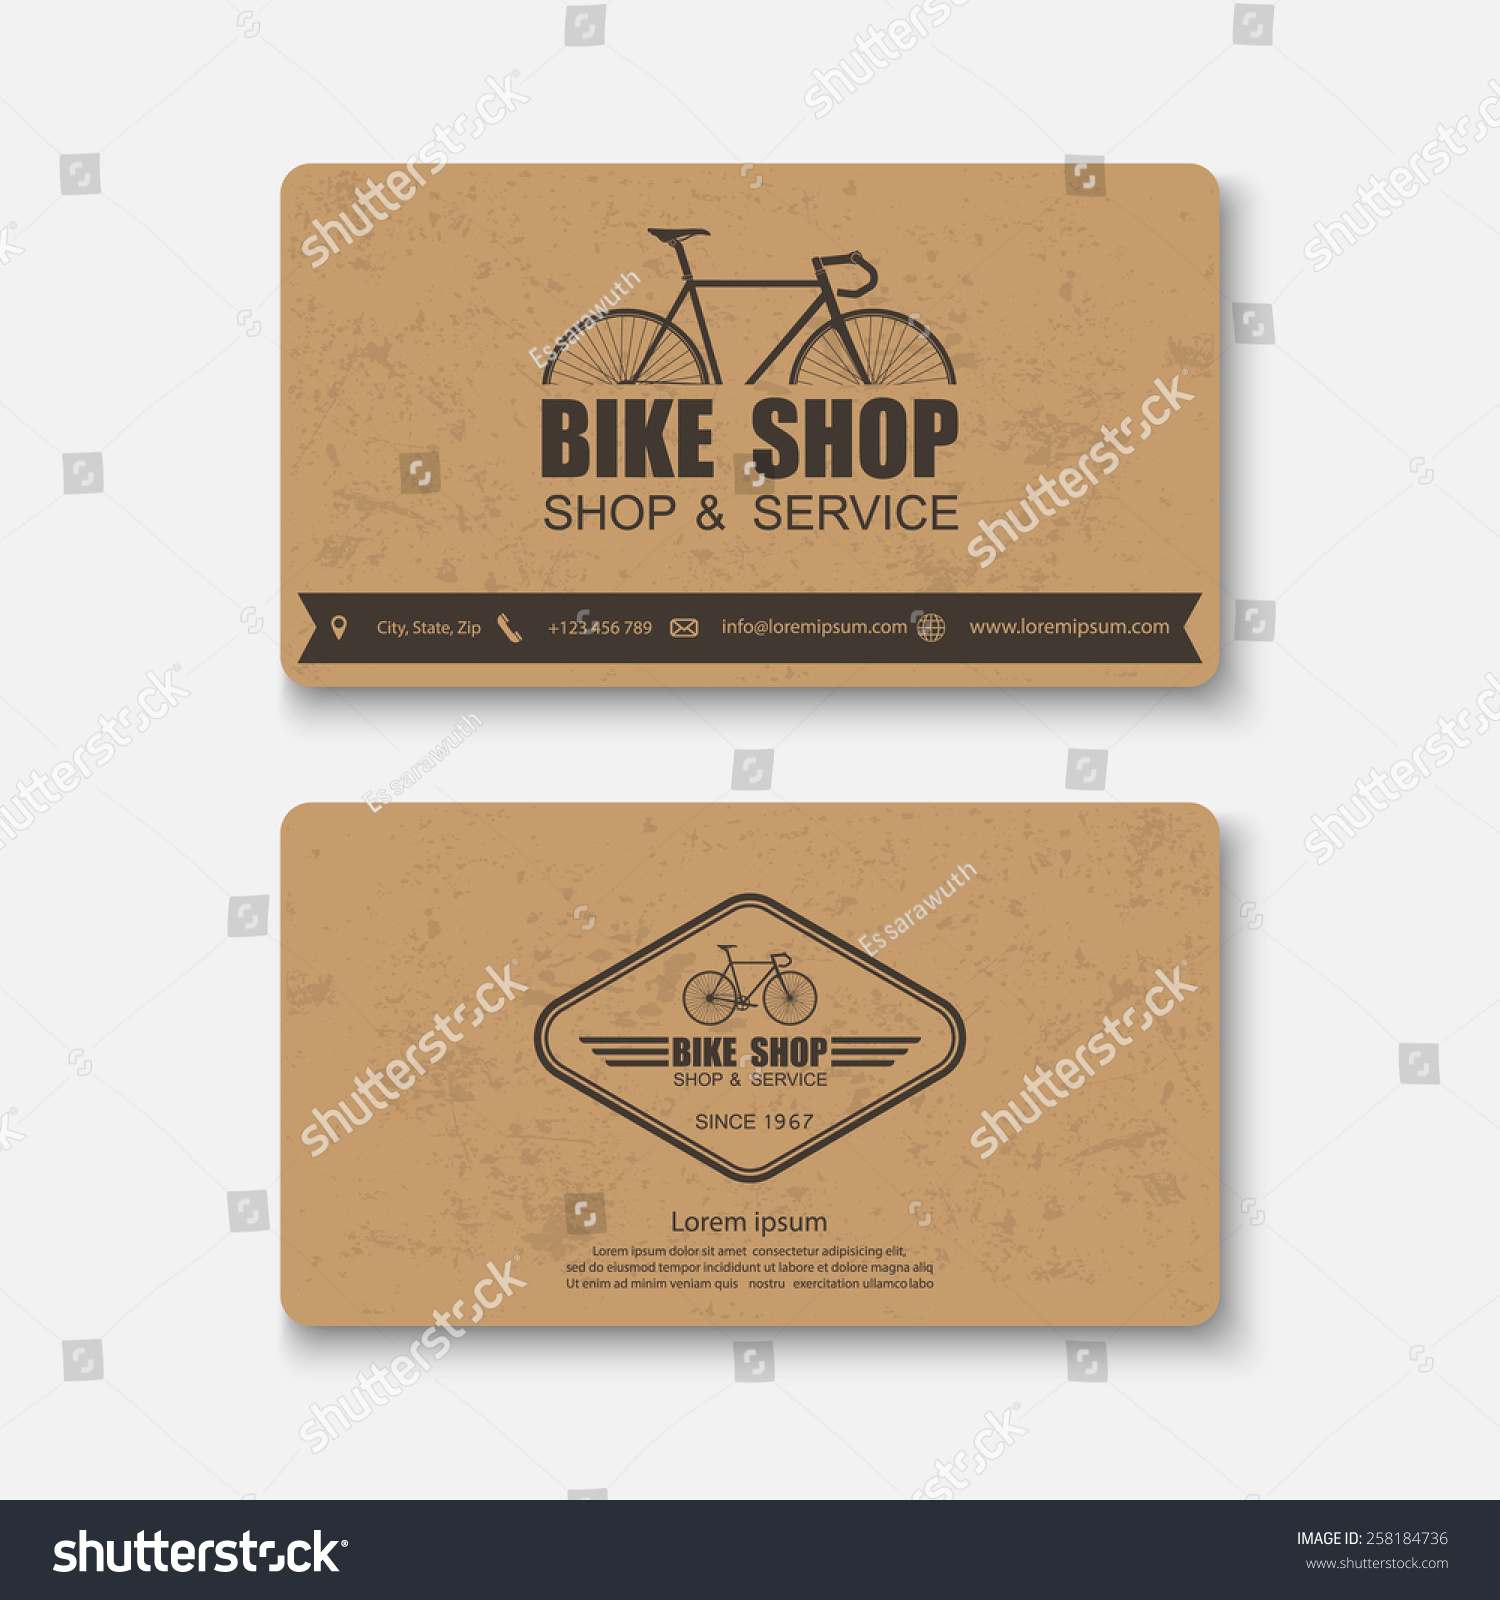 Business Card Bicyclevector Stock Vector 258184736 - Shutterstock